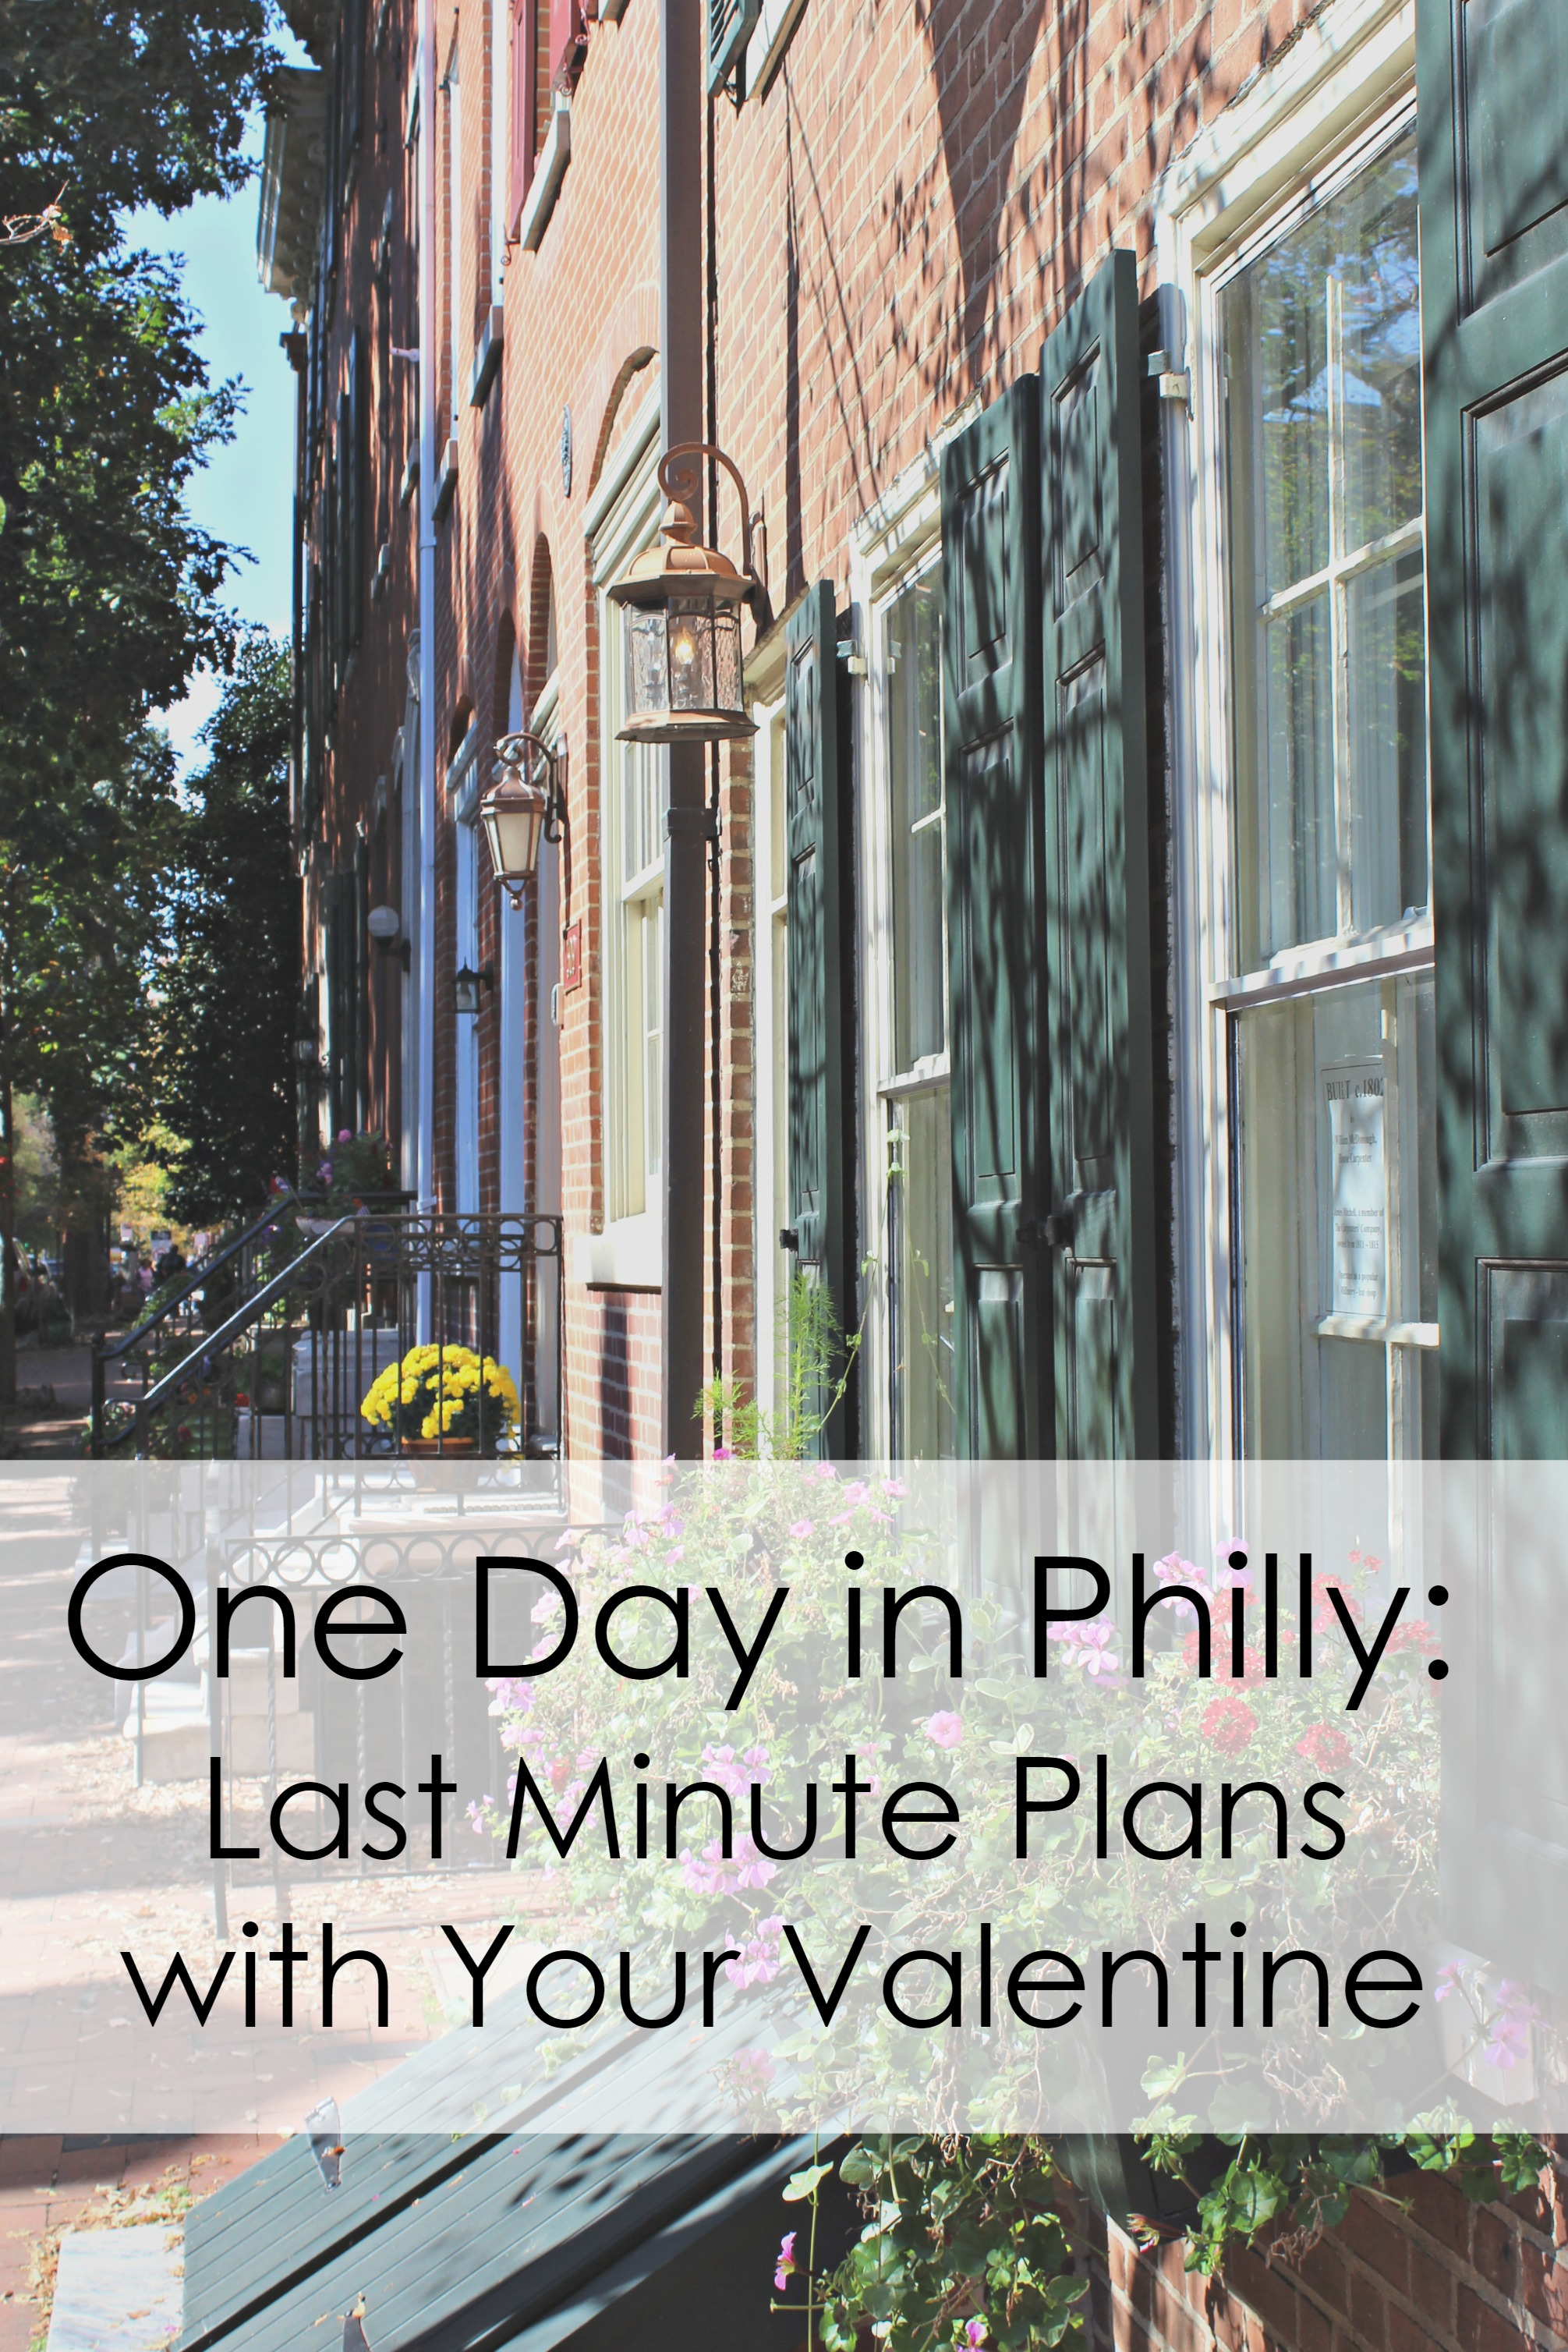 One Day in Philly: Last Minute Plans with Your Valentine // need ideas for your Valentine's Day in Philly? This post shares a day's worth of great things to do with your love!